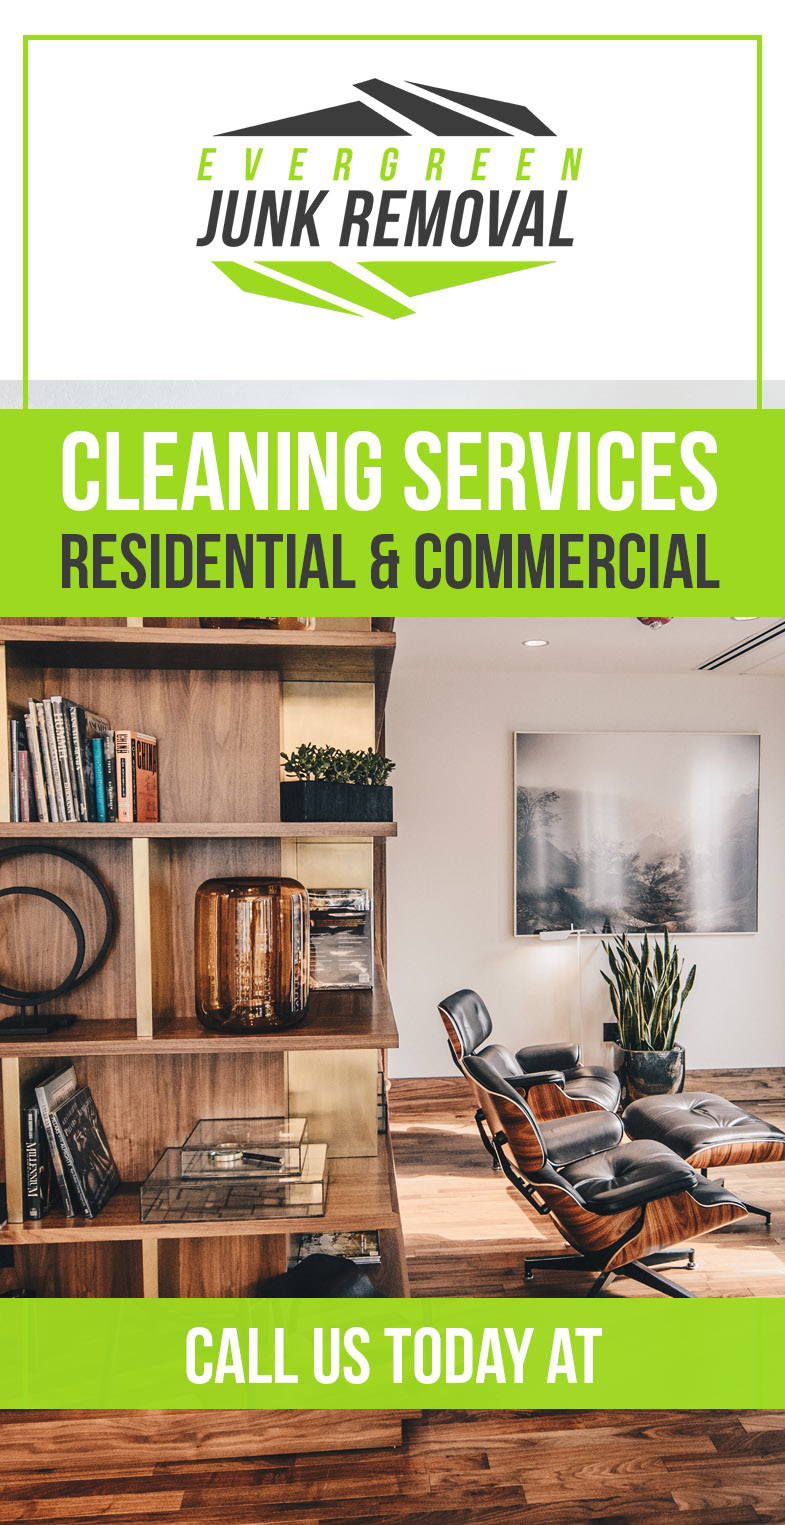 Mangonia Park Commercial Cleaning